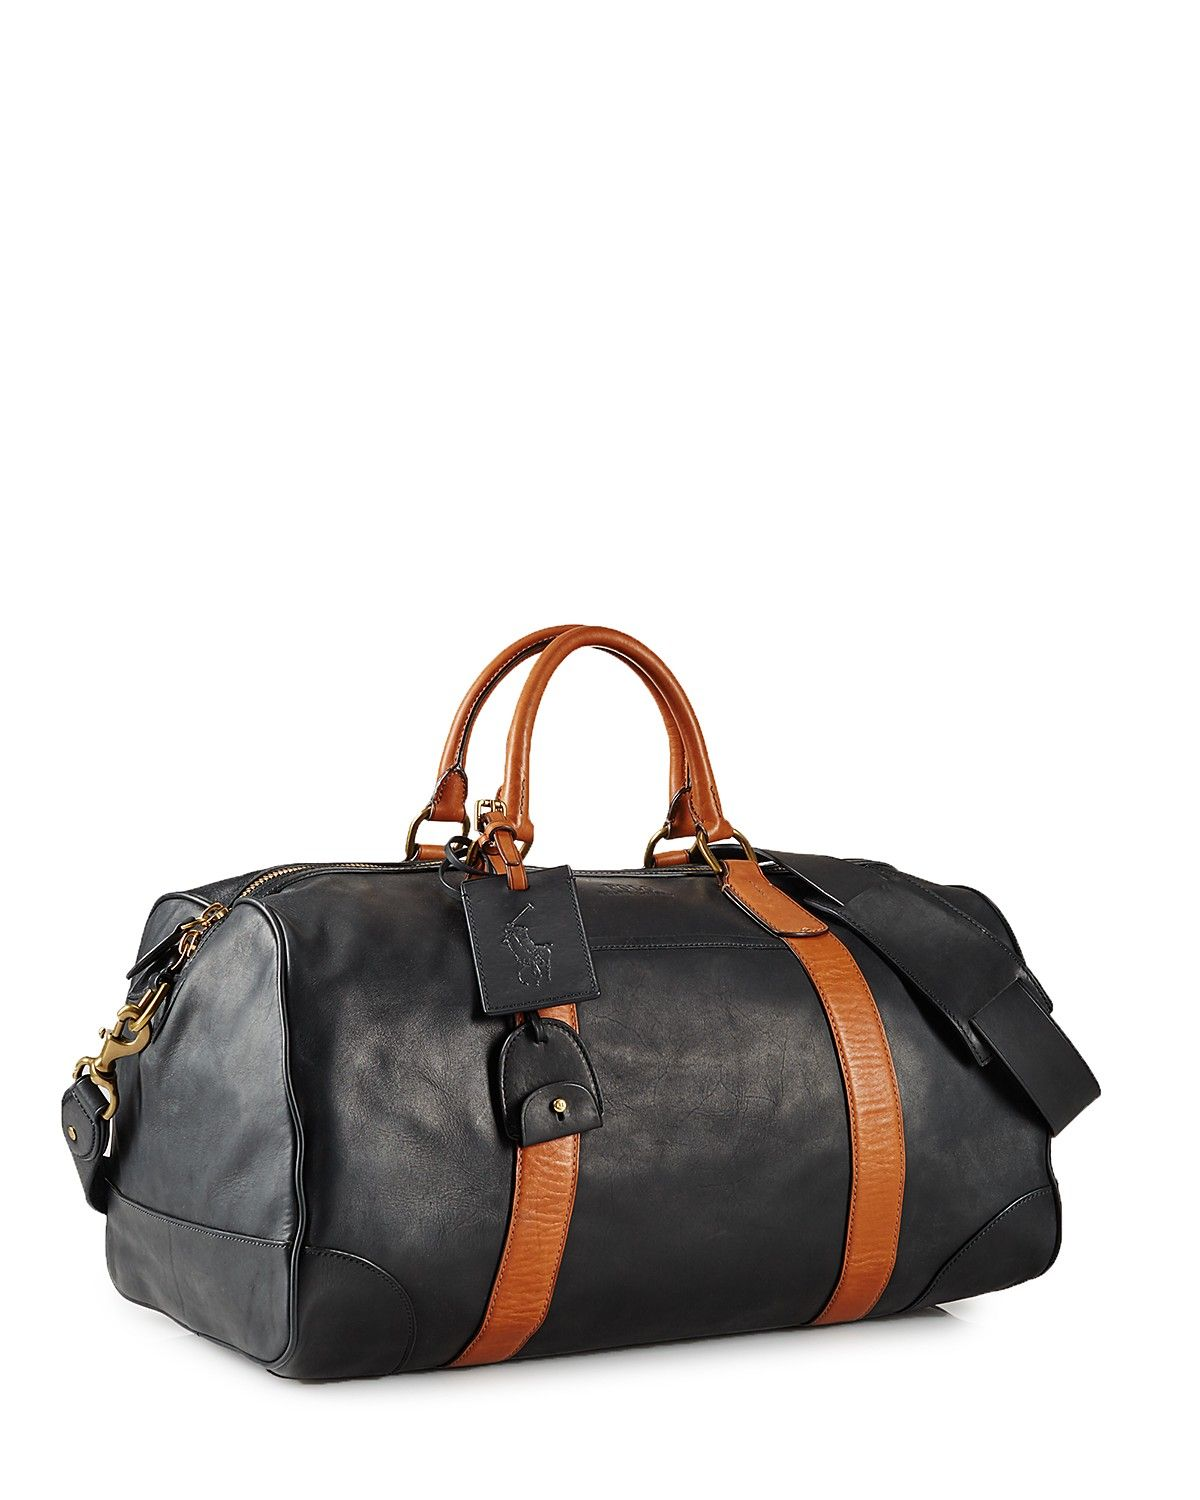 ac41212b5c75c Polo Ralph Lauren Two-Toned Leather Duffel Bag